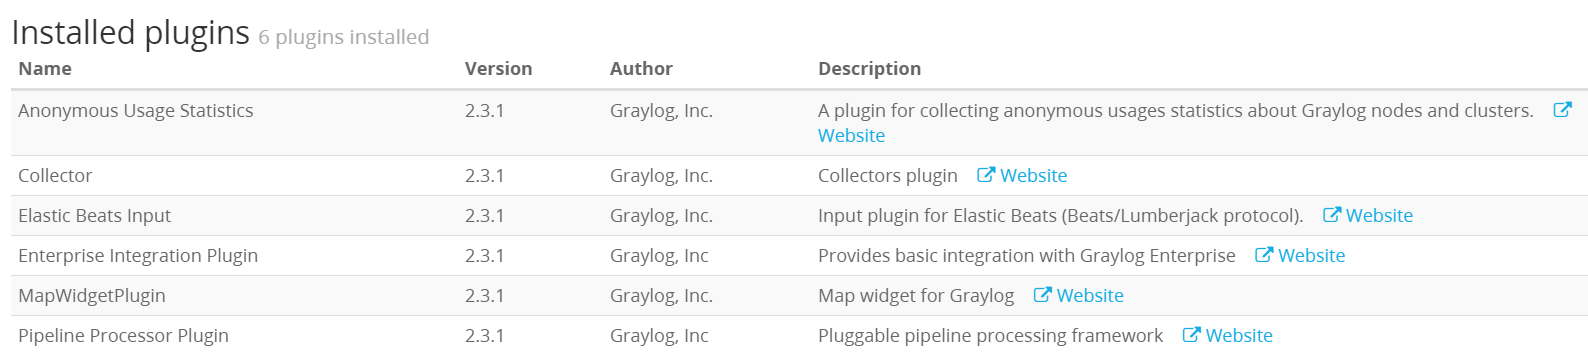 Installed plugins description field all referred to https://www